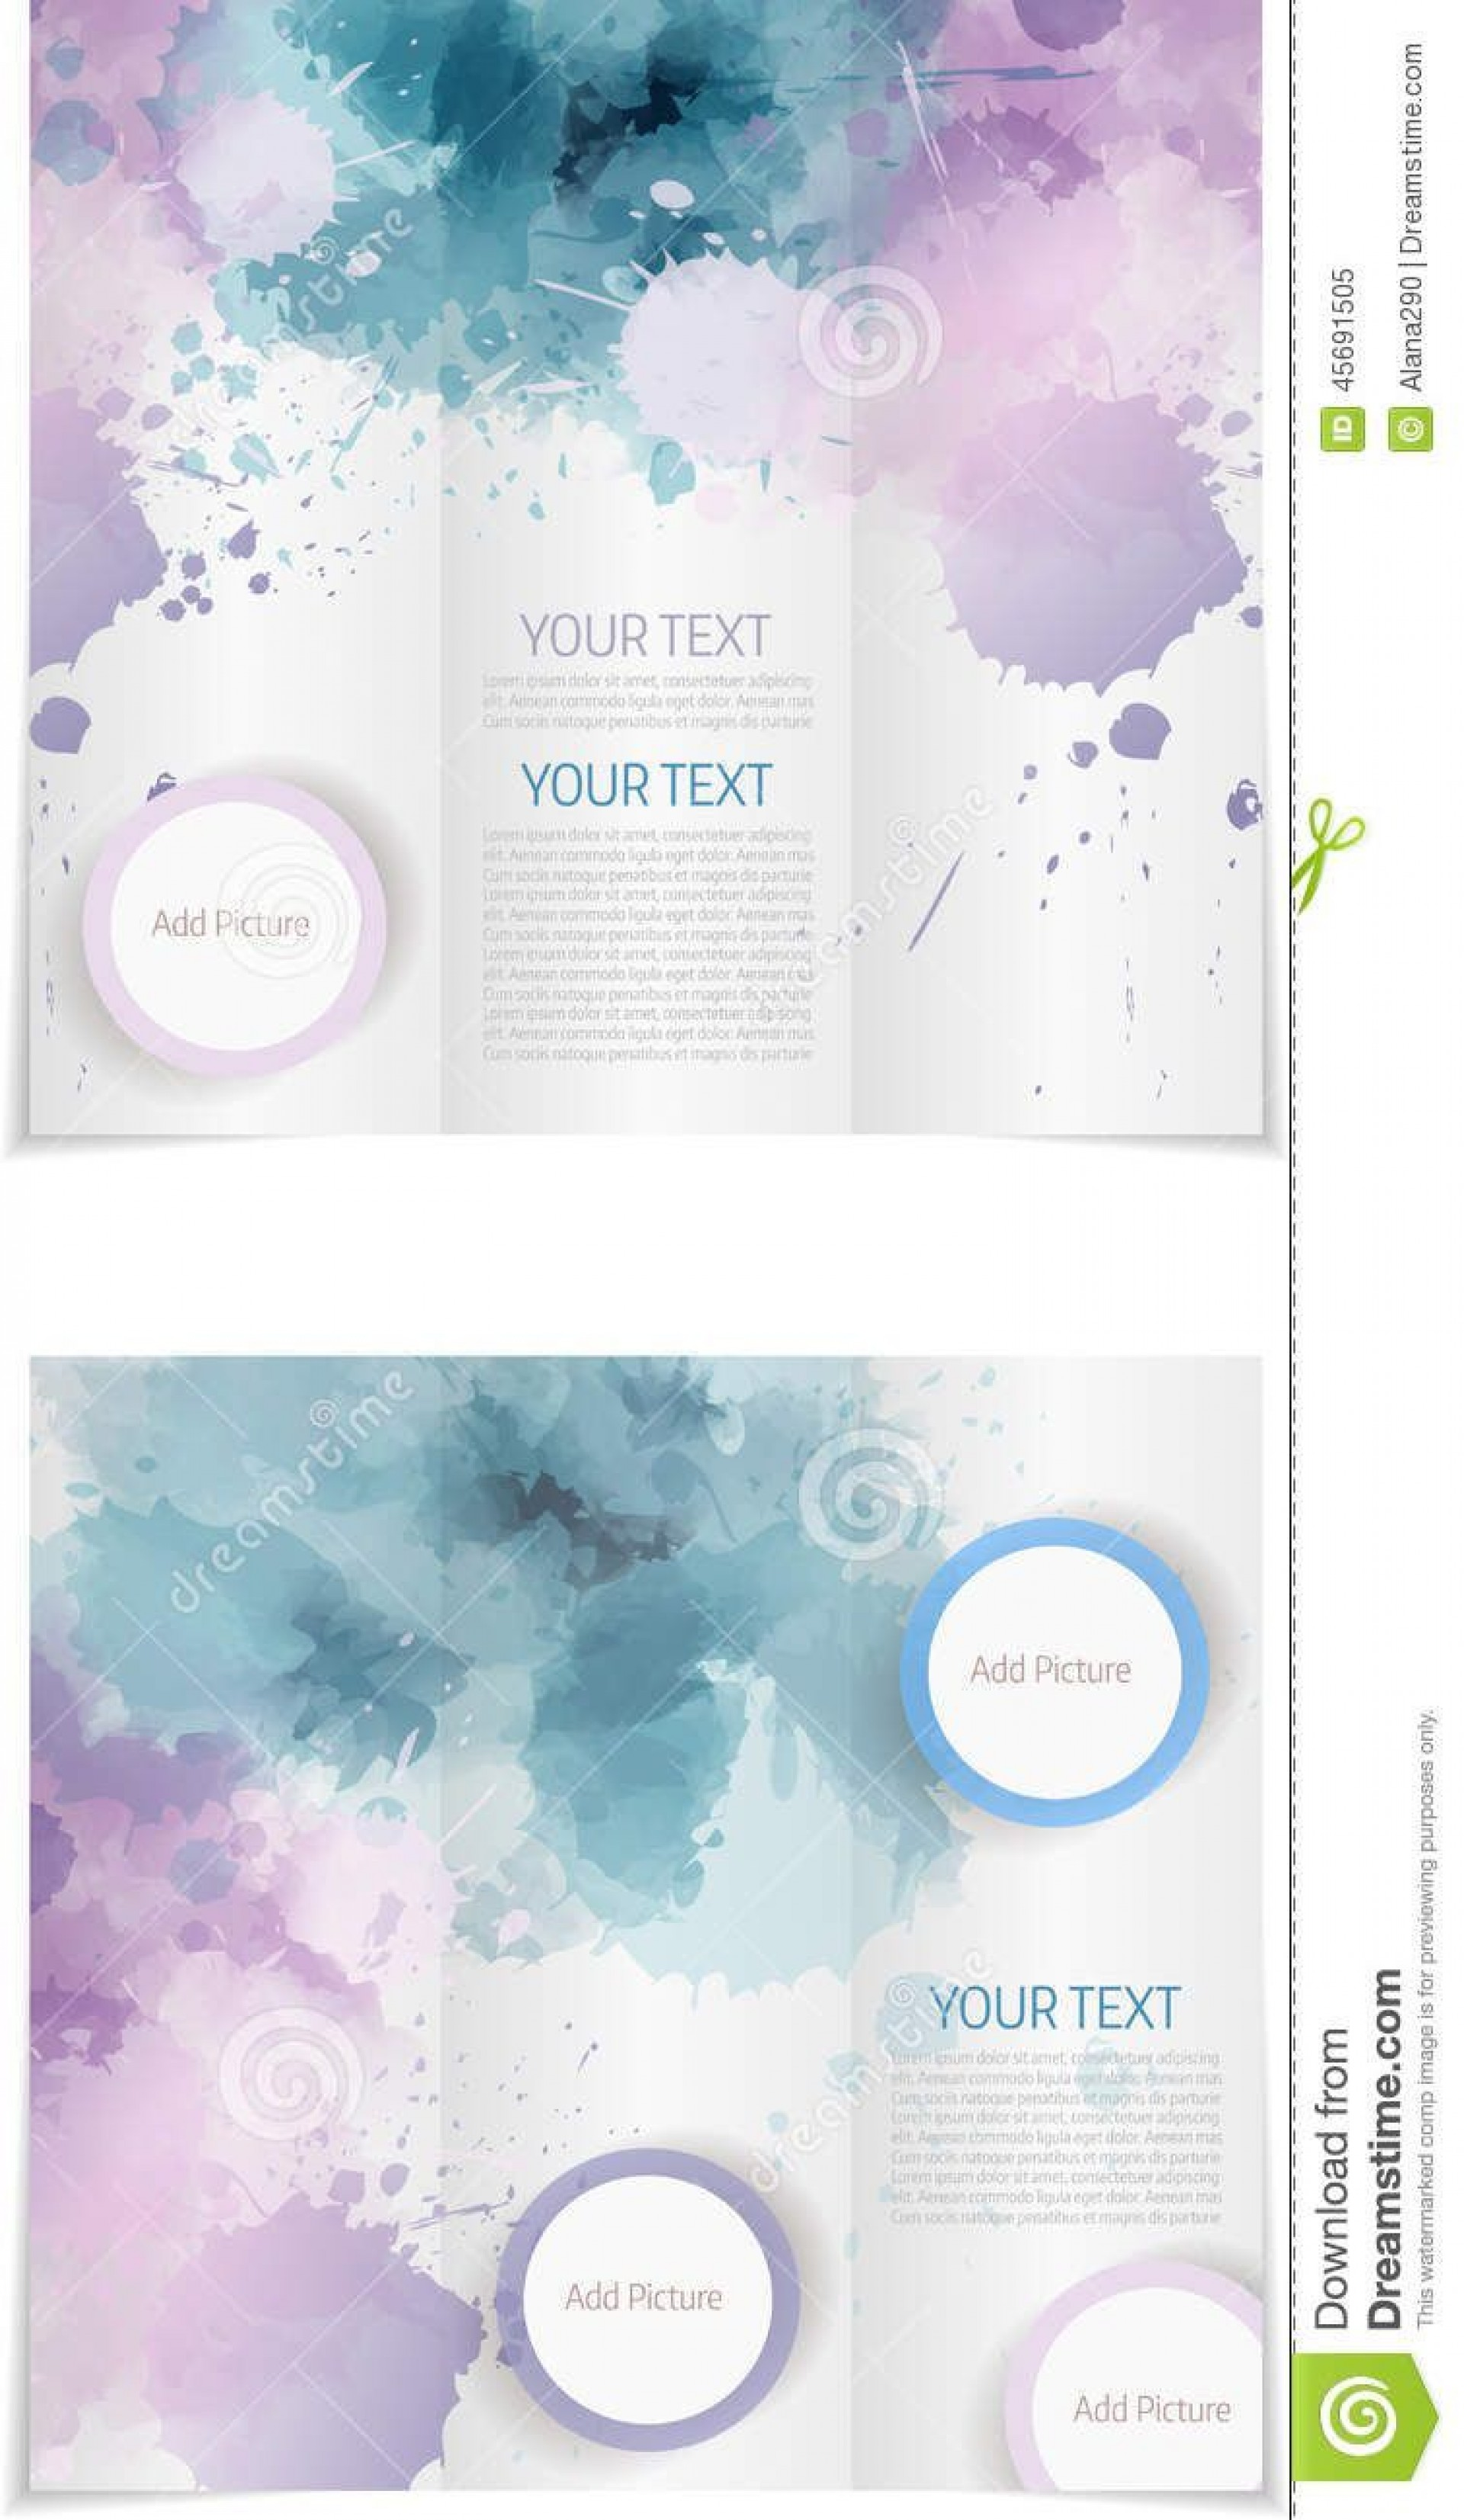 010 Unbelievable M Word Tri Fold Brochure Template Highest Clarity  Microsoft Free Download1920